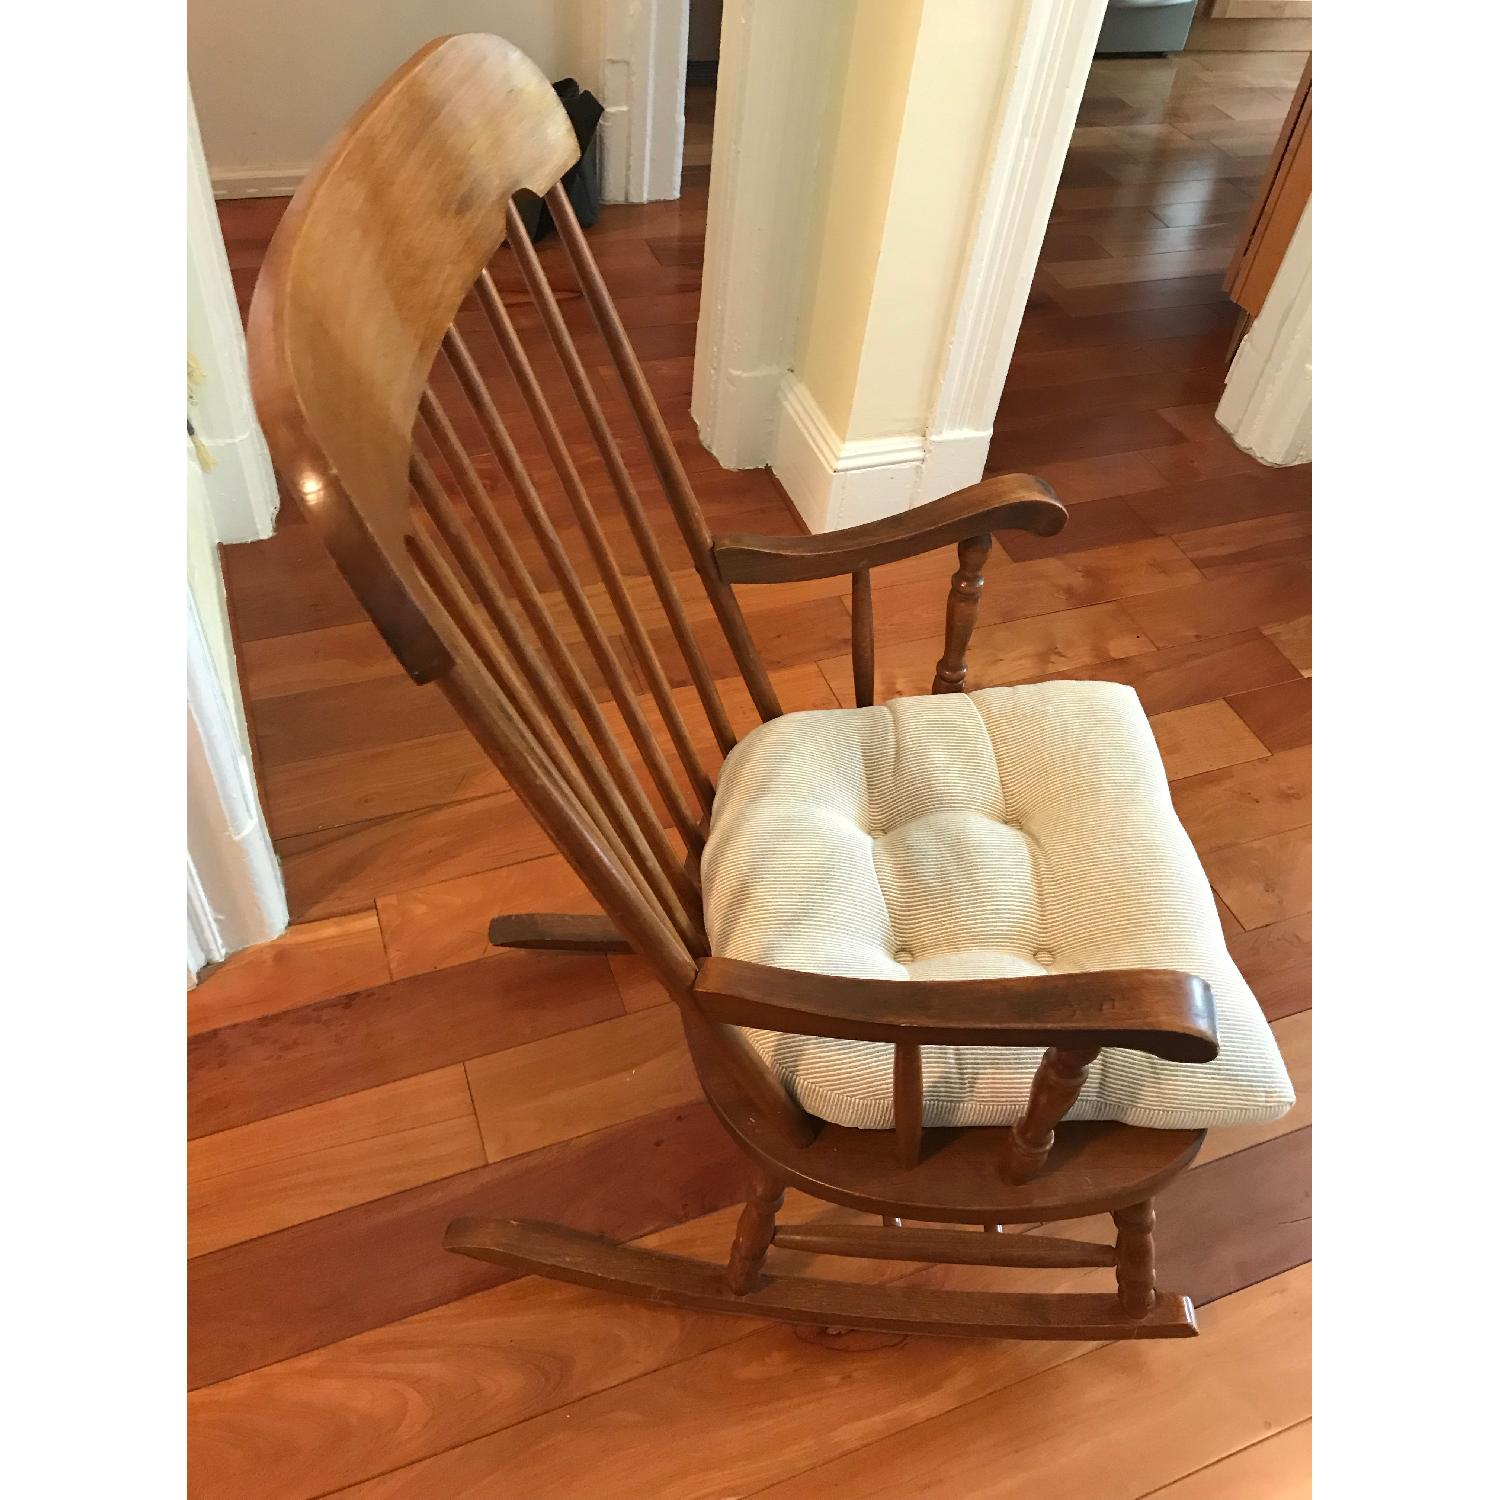 Vintage Wooden Rocking Chair - image-2